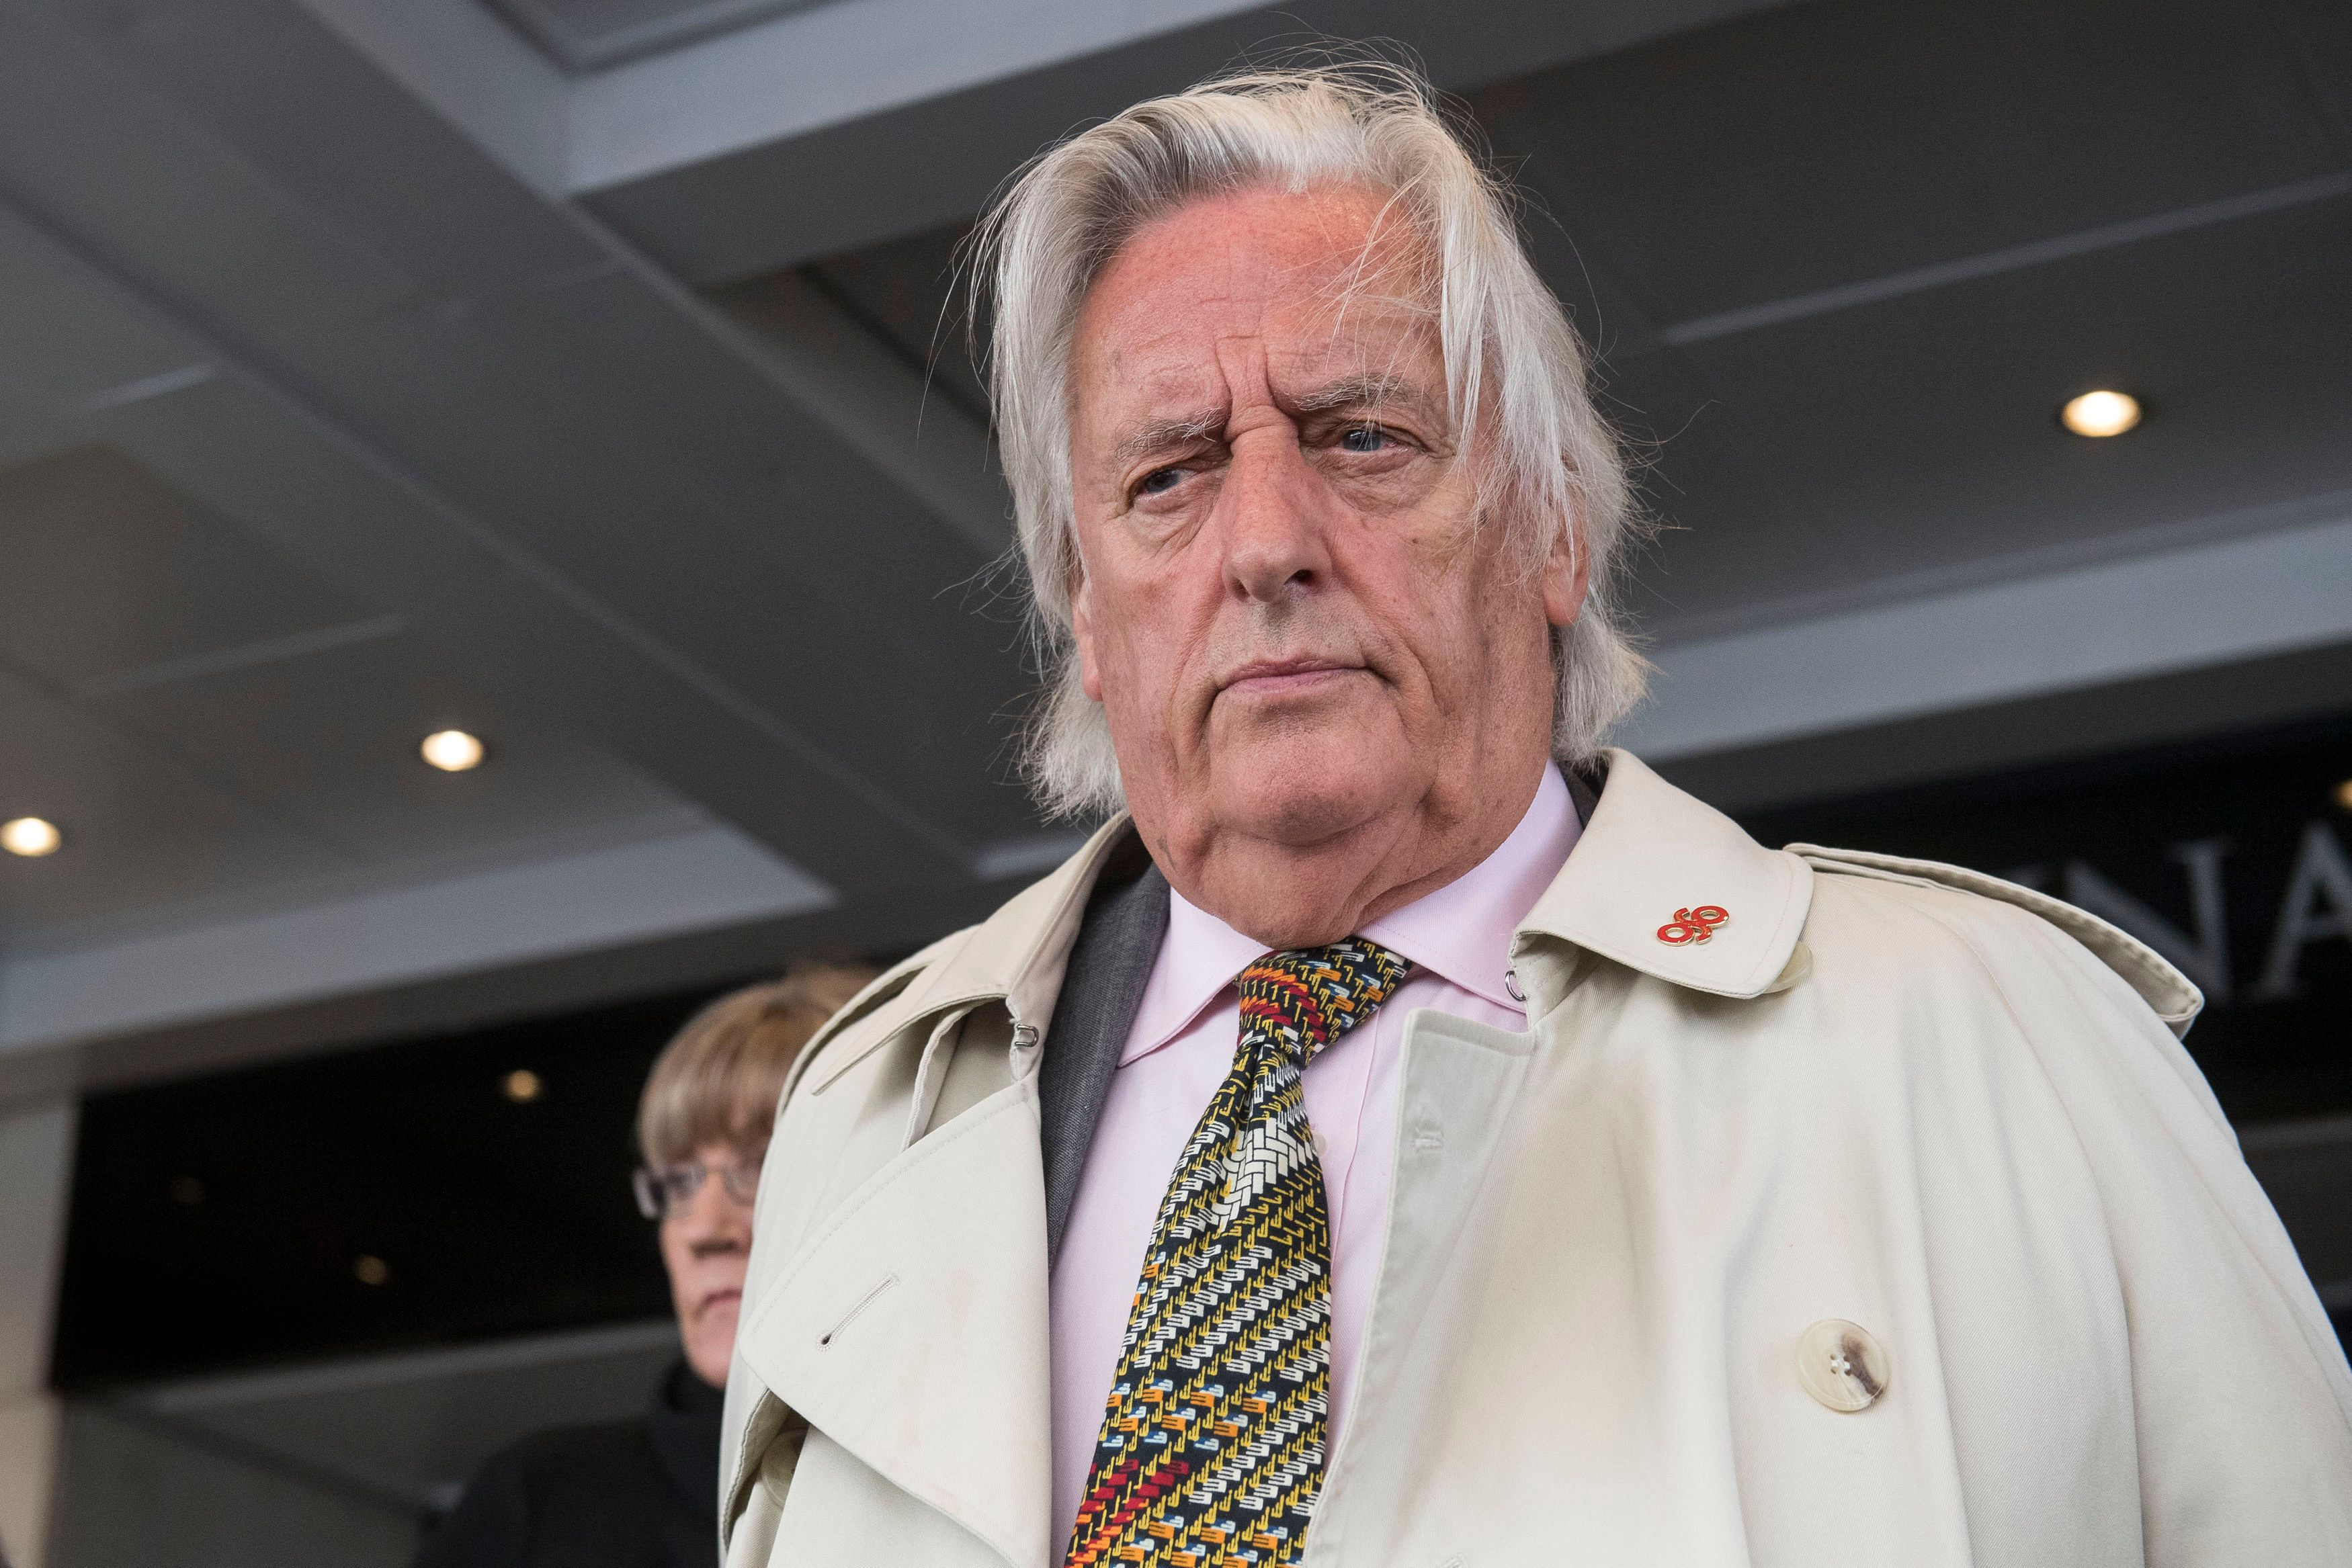 'The restoration of public confidence generally and the restoration of confidence by those most affected, as claimed by the Prime Minister, are yet to be fully engaged,' lawyer Michael Mansfield told the inquiry